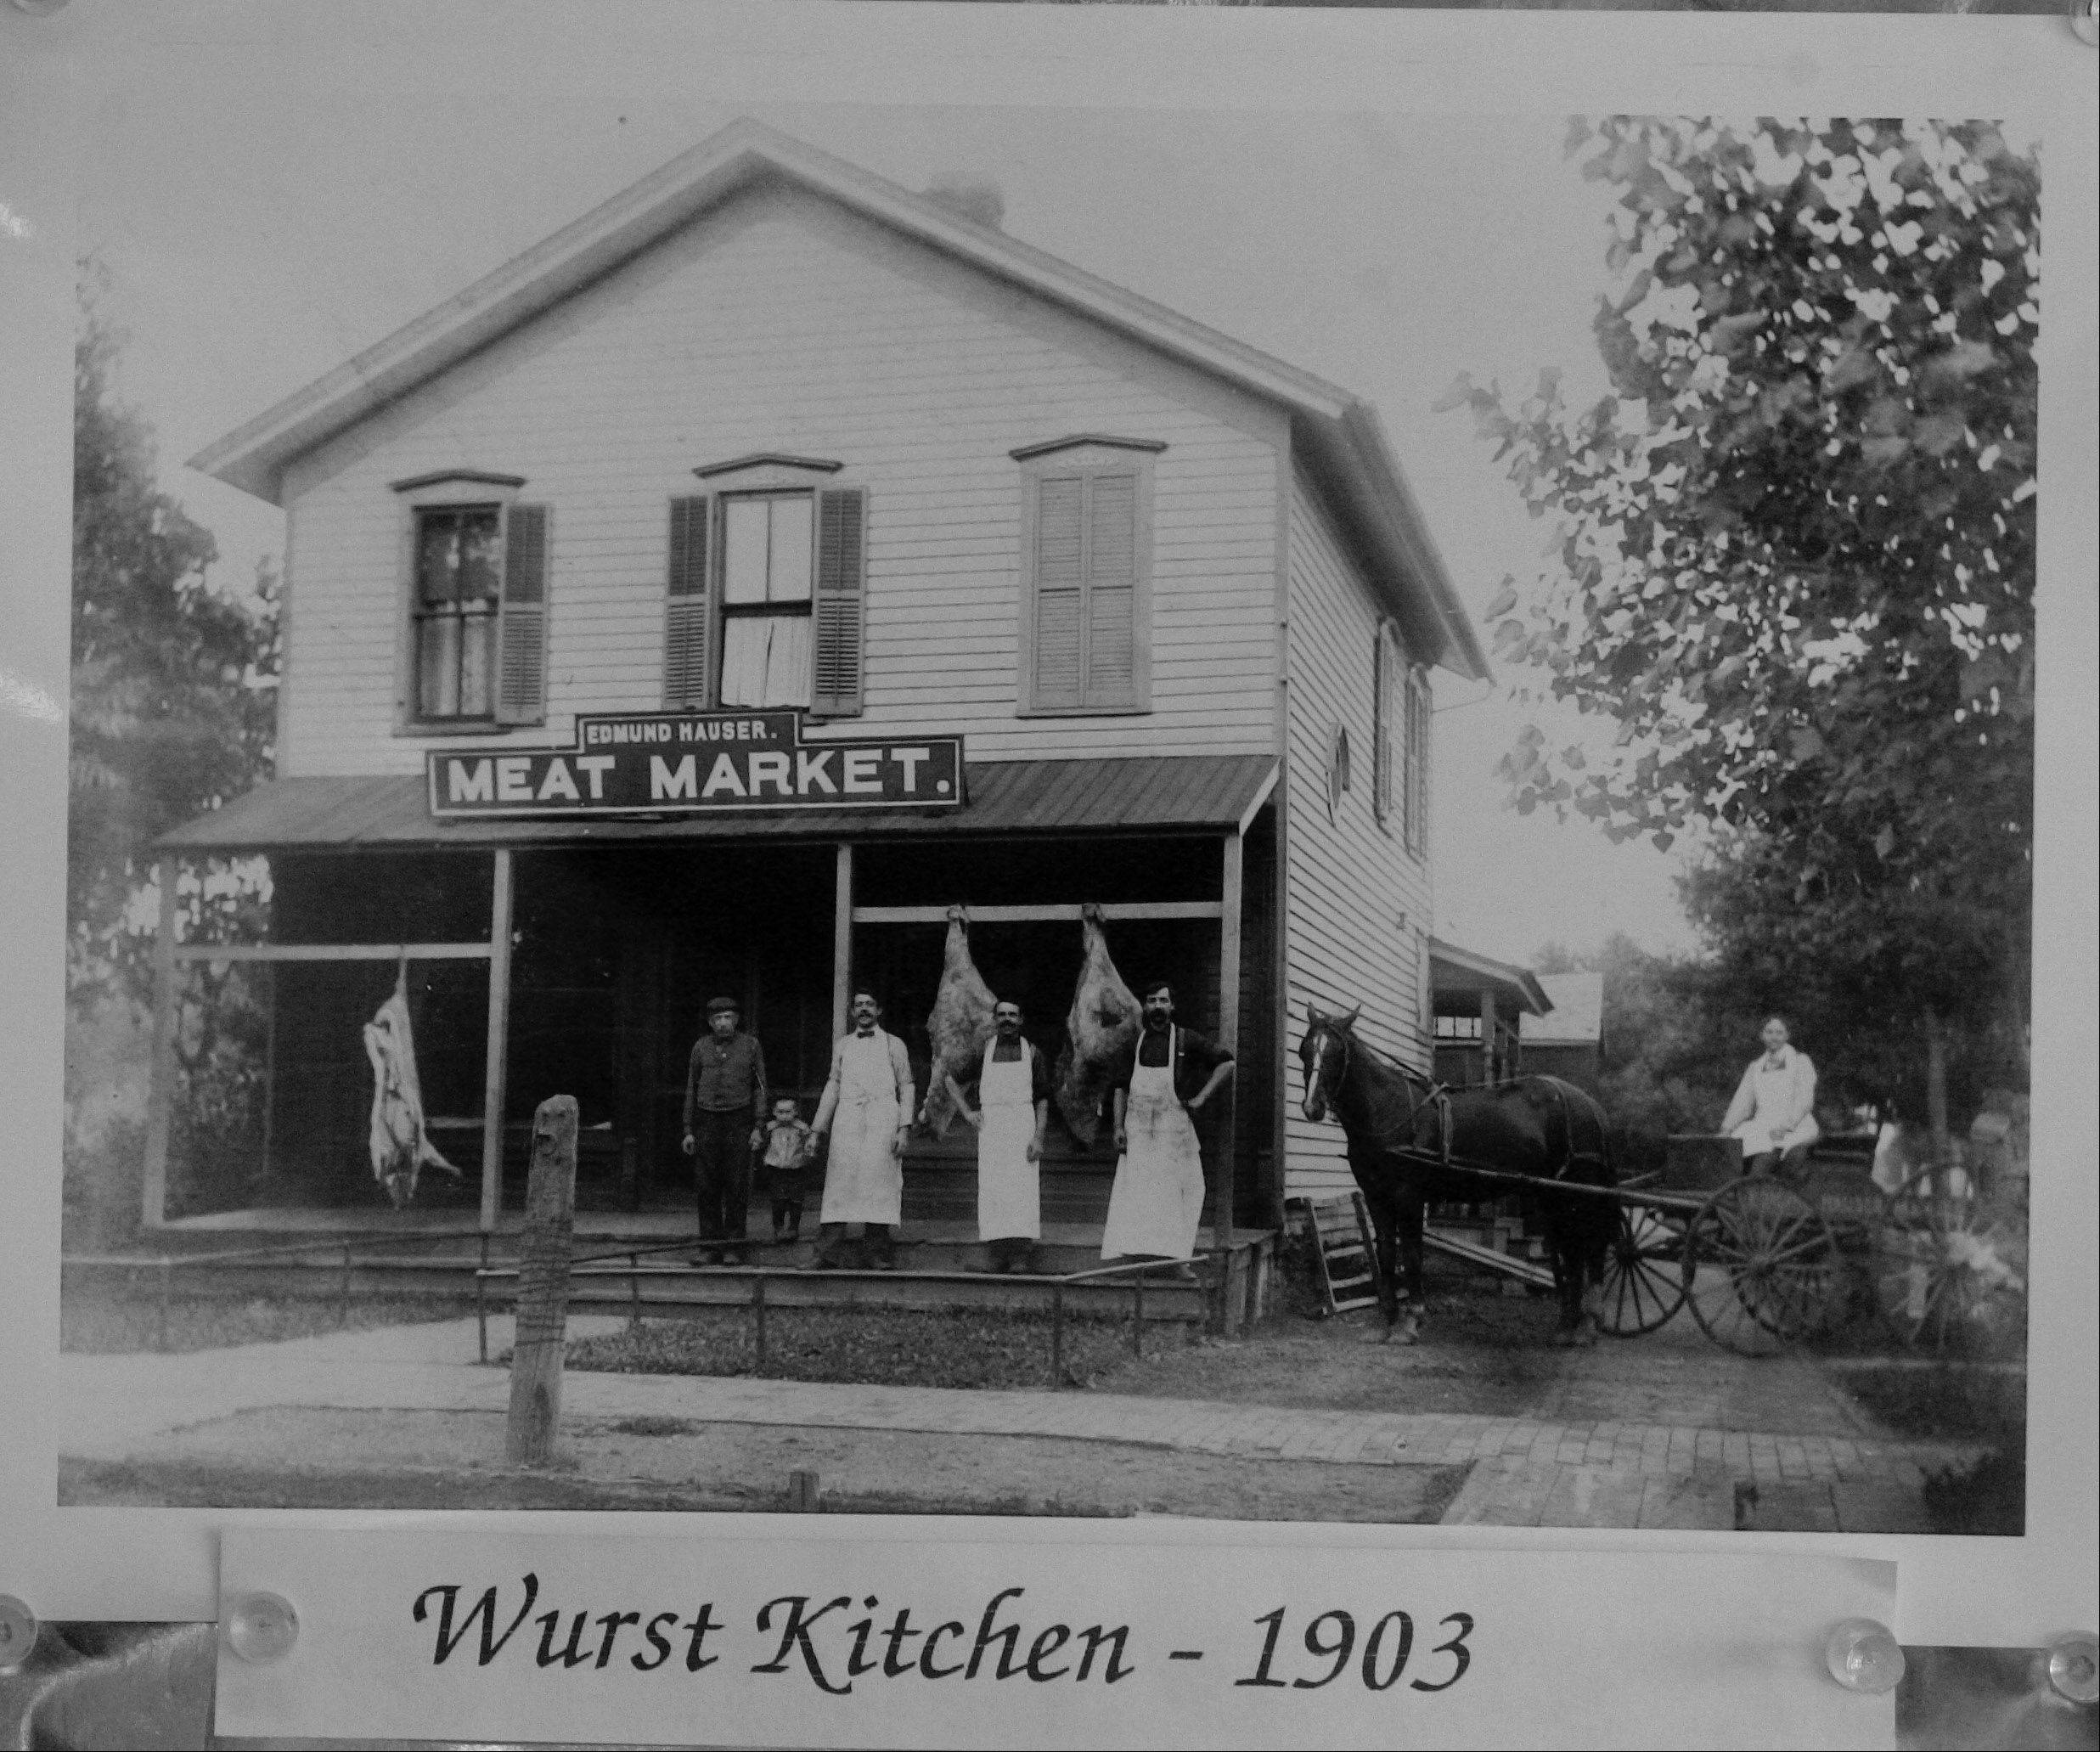 A photo hanging in Wurst Kitchen shows what the store looked like in 1903 when it was known as Hauser Meat Market.